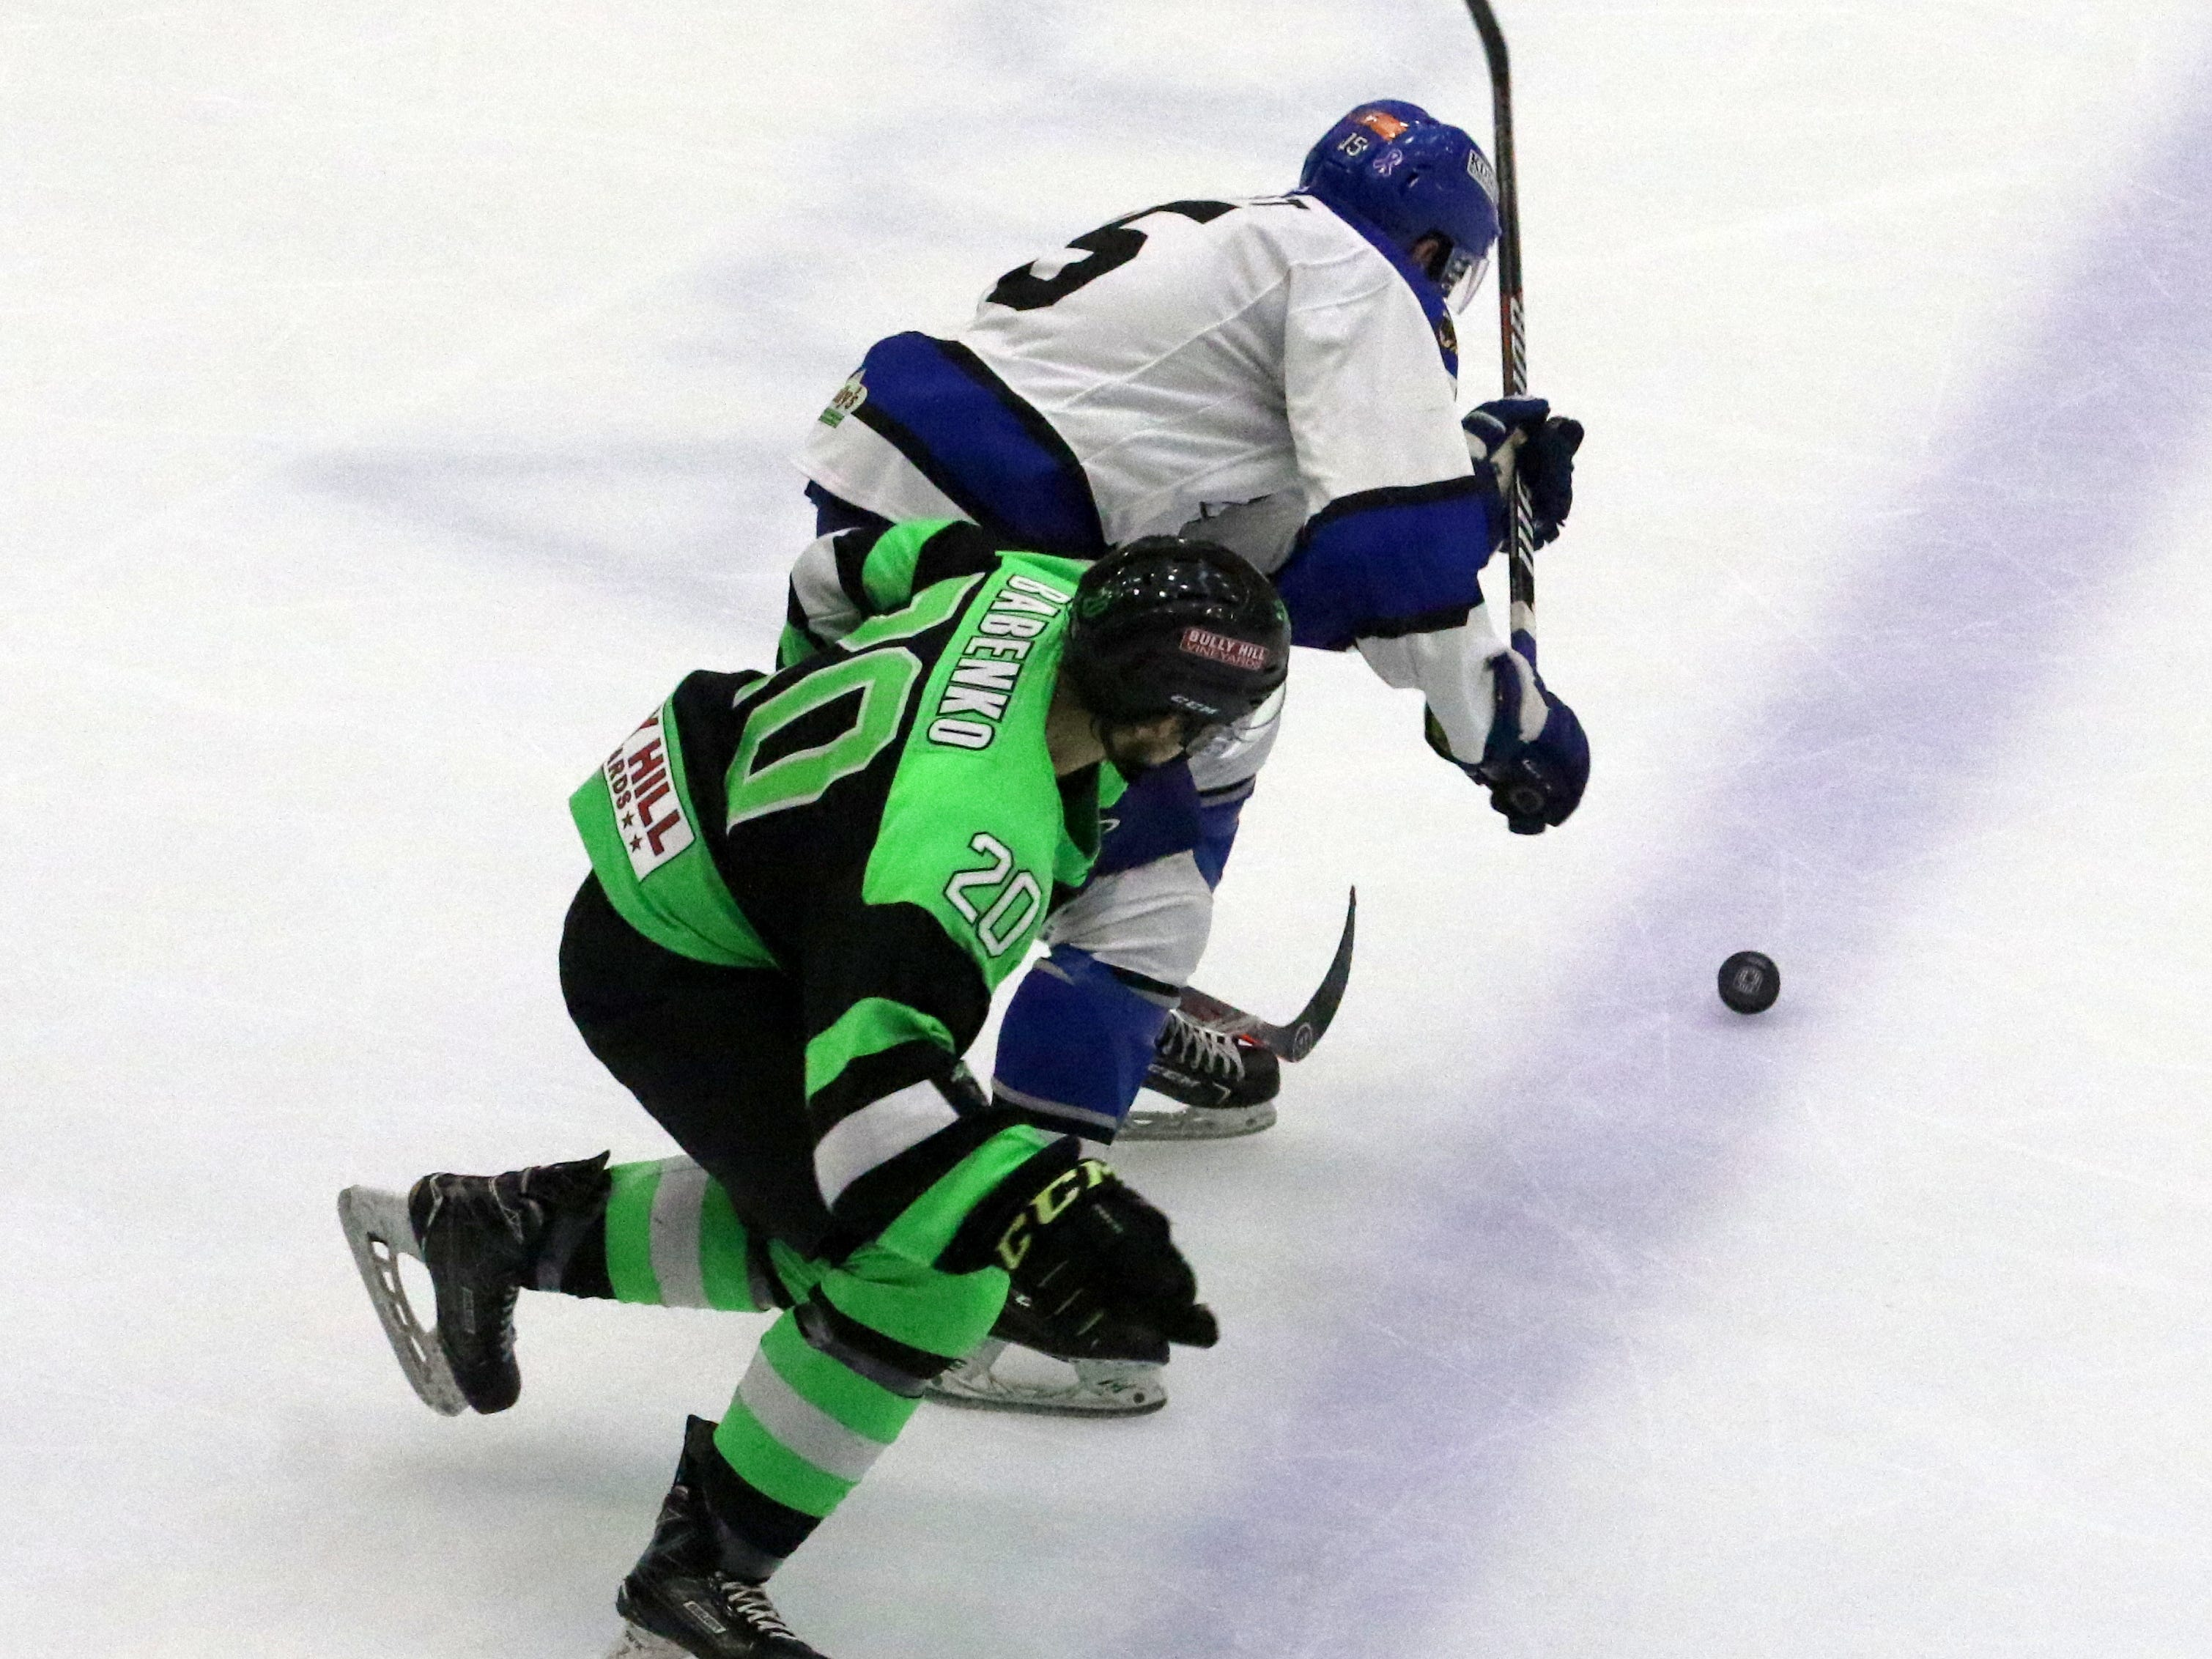 Watertown's Cameron Dimmitt (top) and Elmira's Dmytro Babenko chase the puck during Game 2 of the Federal Hockey League semifinal series between the Enforcers and Wolves on April 13, 2019 at Elmira's First Arena.